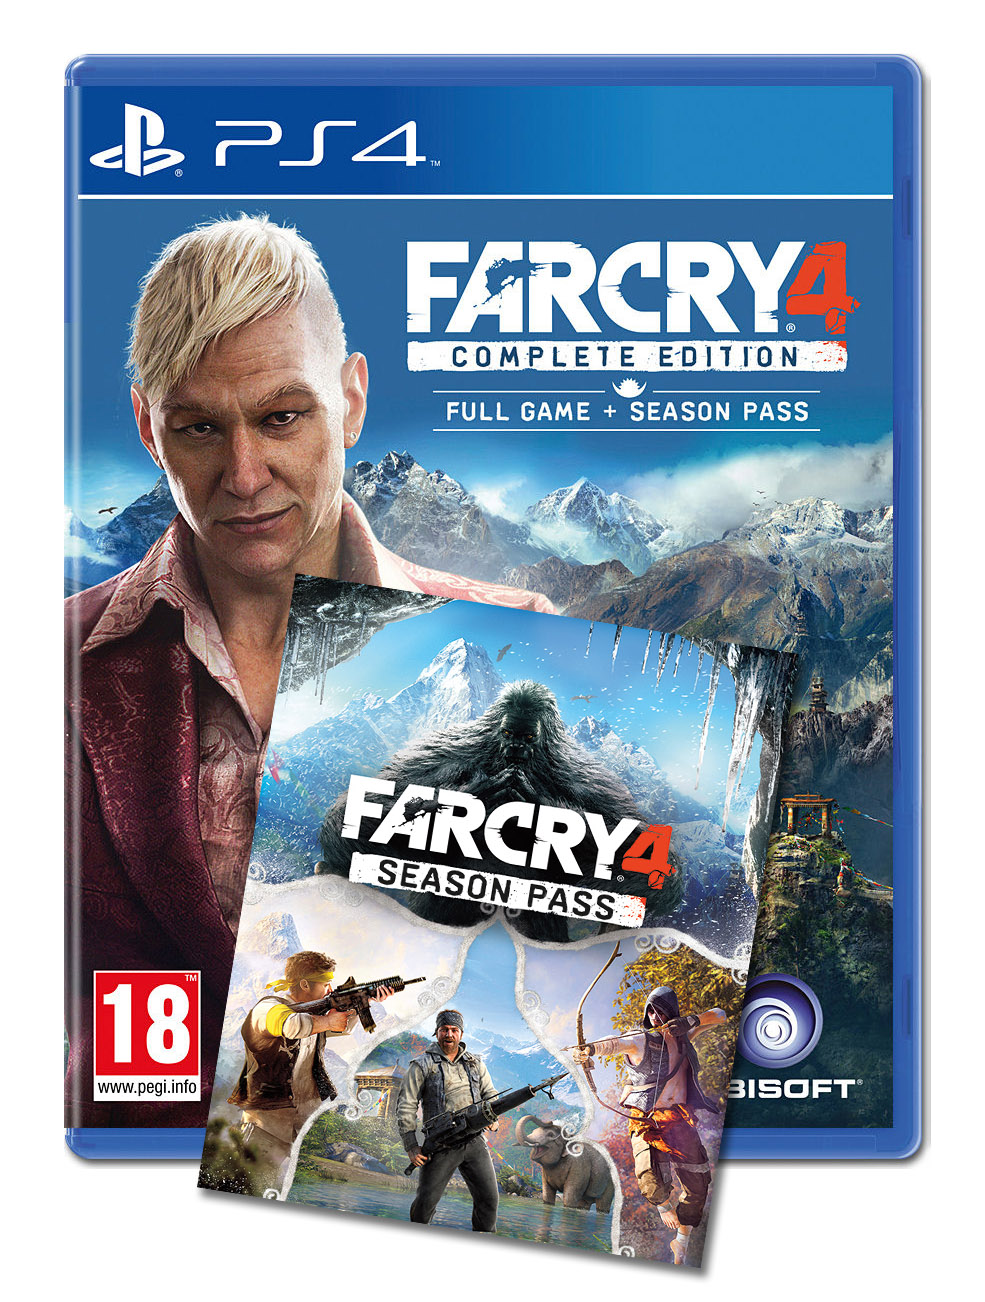 Far-Cry-4-Complete-Edition-cover-wallpaper-nat-games-logo